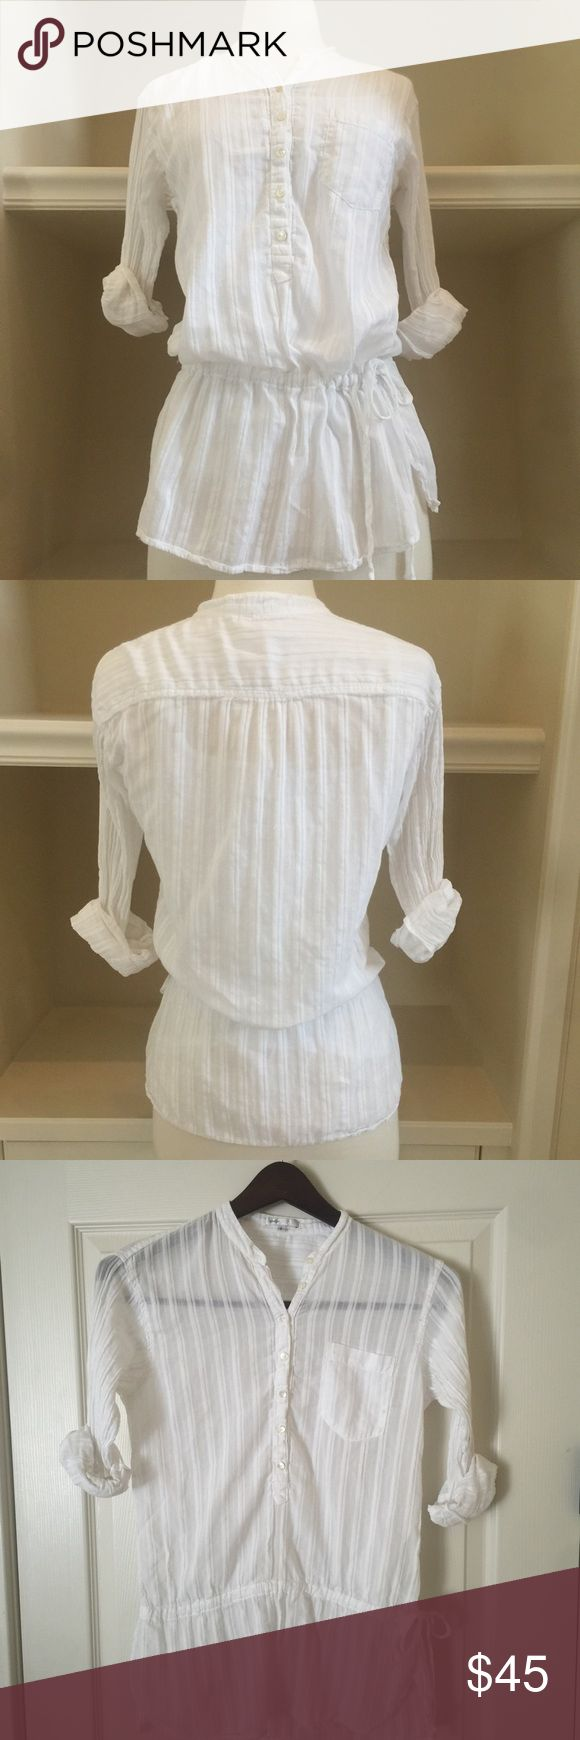 Vince white tunic top size small Vince white tunic top size small. In great used condition. Vince Tops Tunics